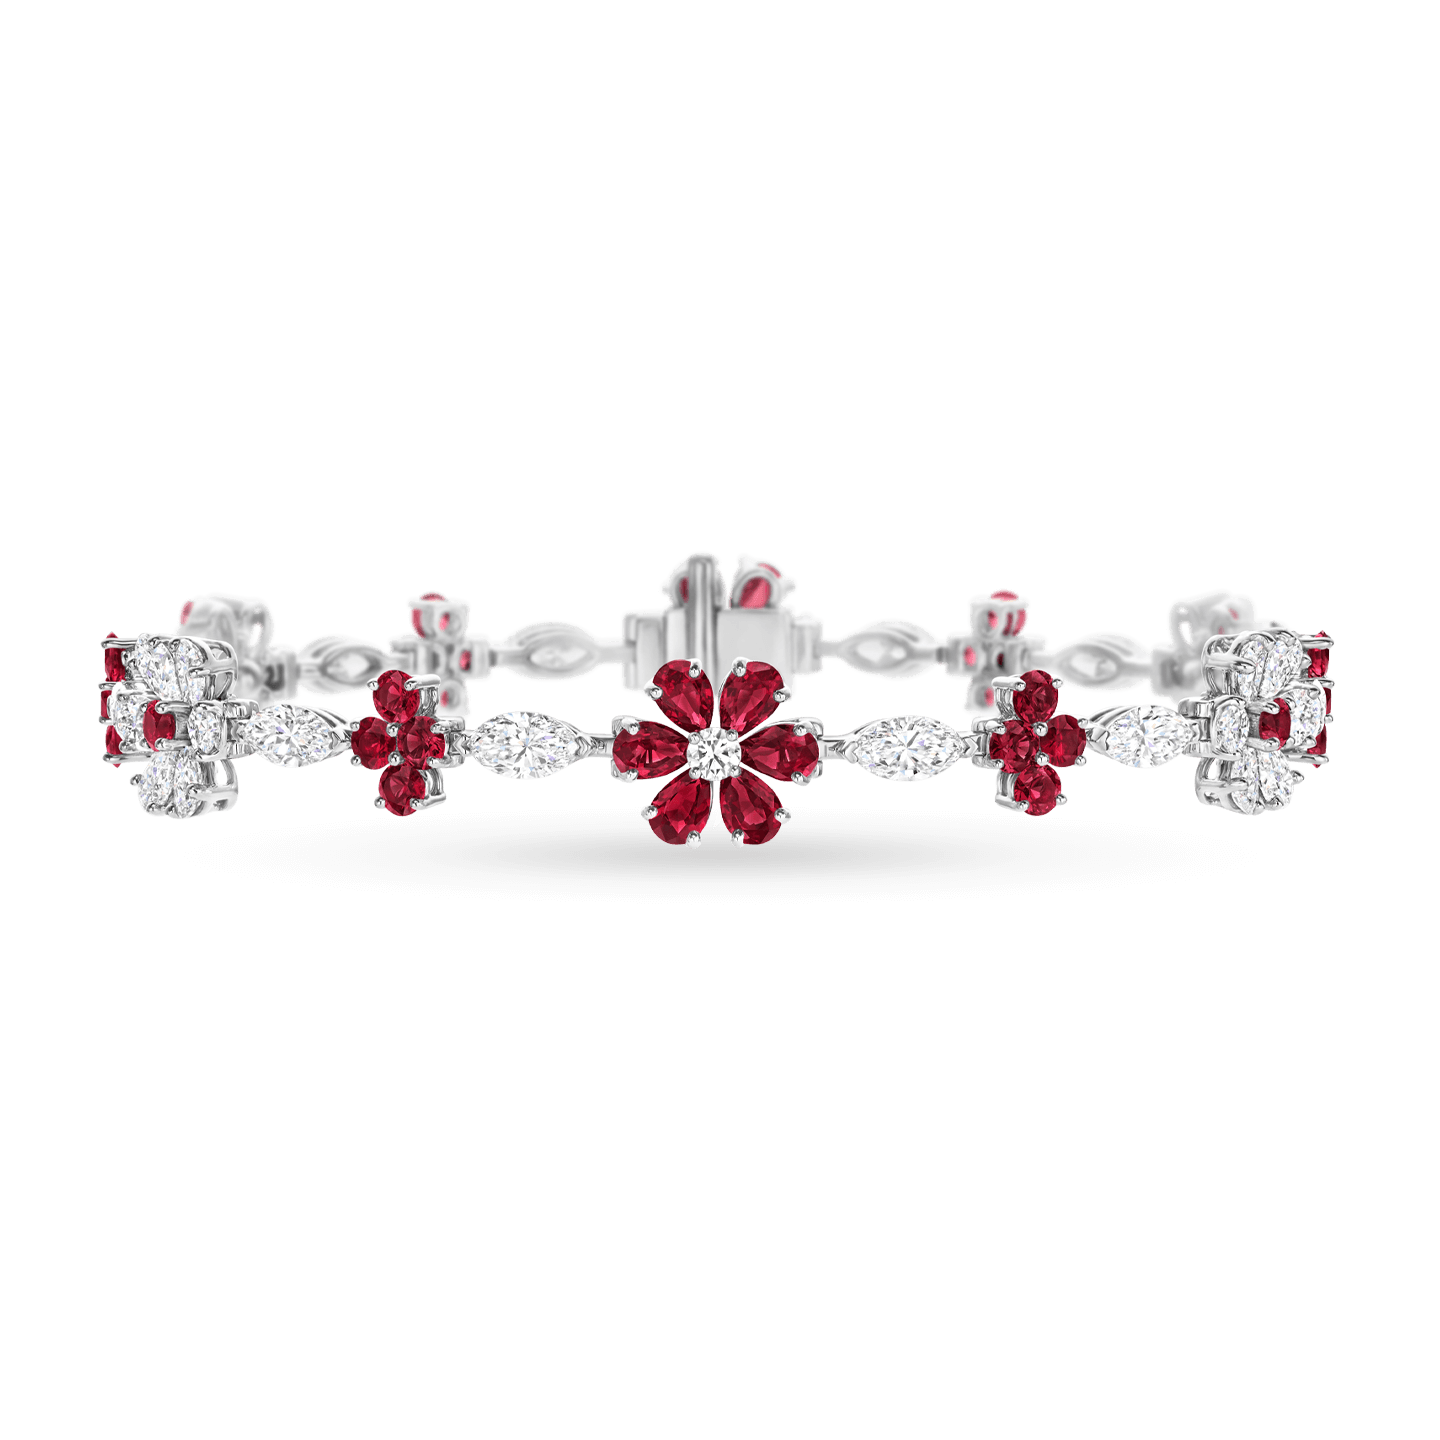 Forget-Me-Not Ruby and Diamond Bracelet, Product Image 1